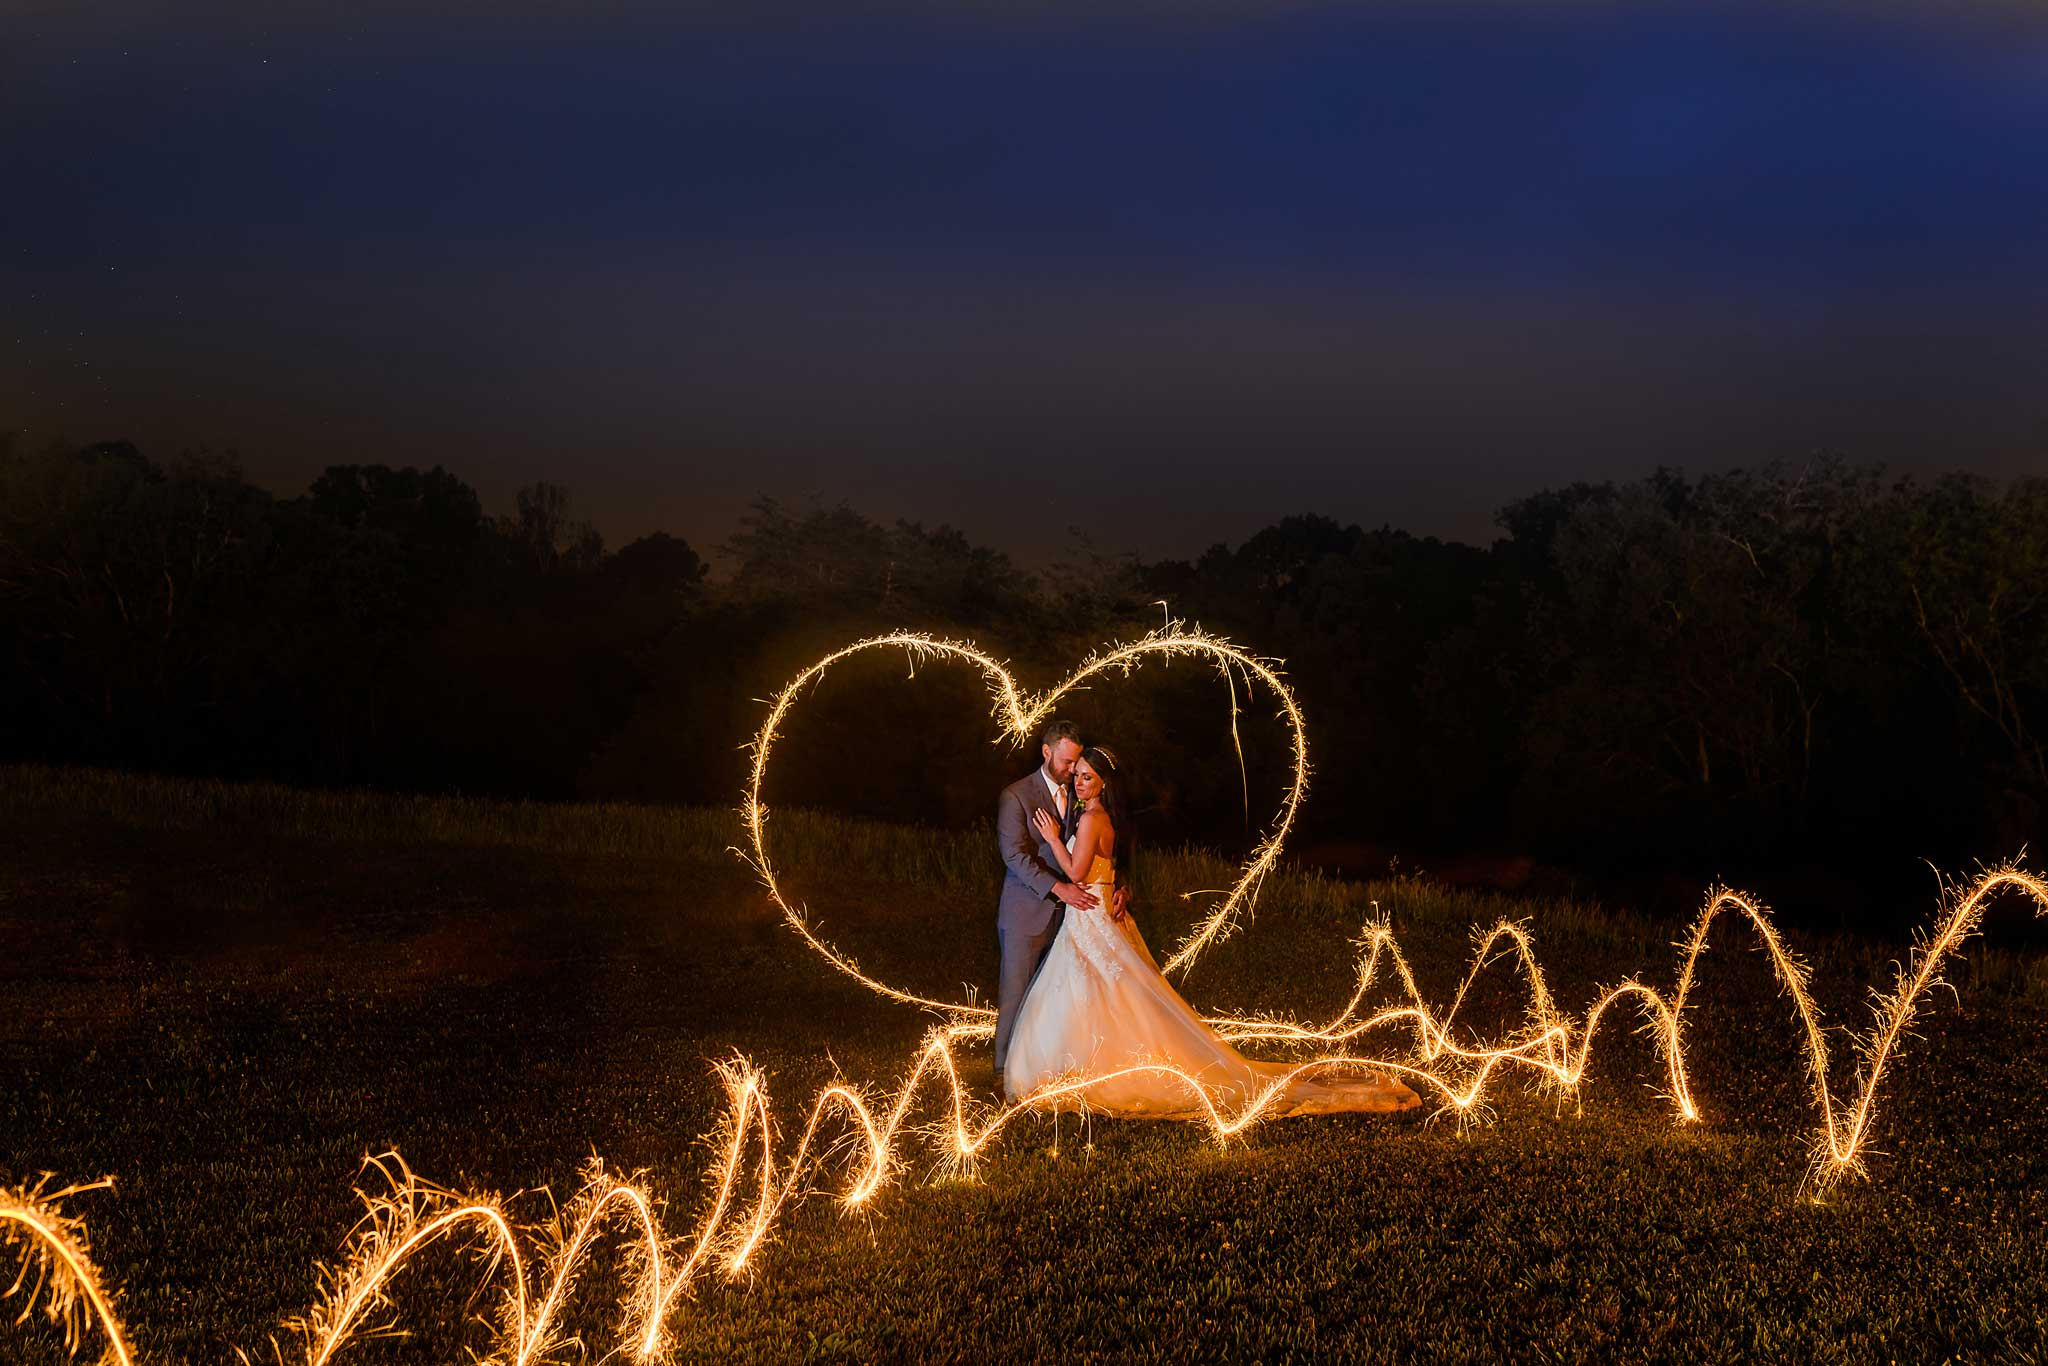 Wedding Sparklers drawn heart around couple in the dark at The Barn at Drewia Hill in Sale Creek TN